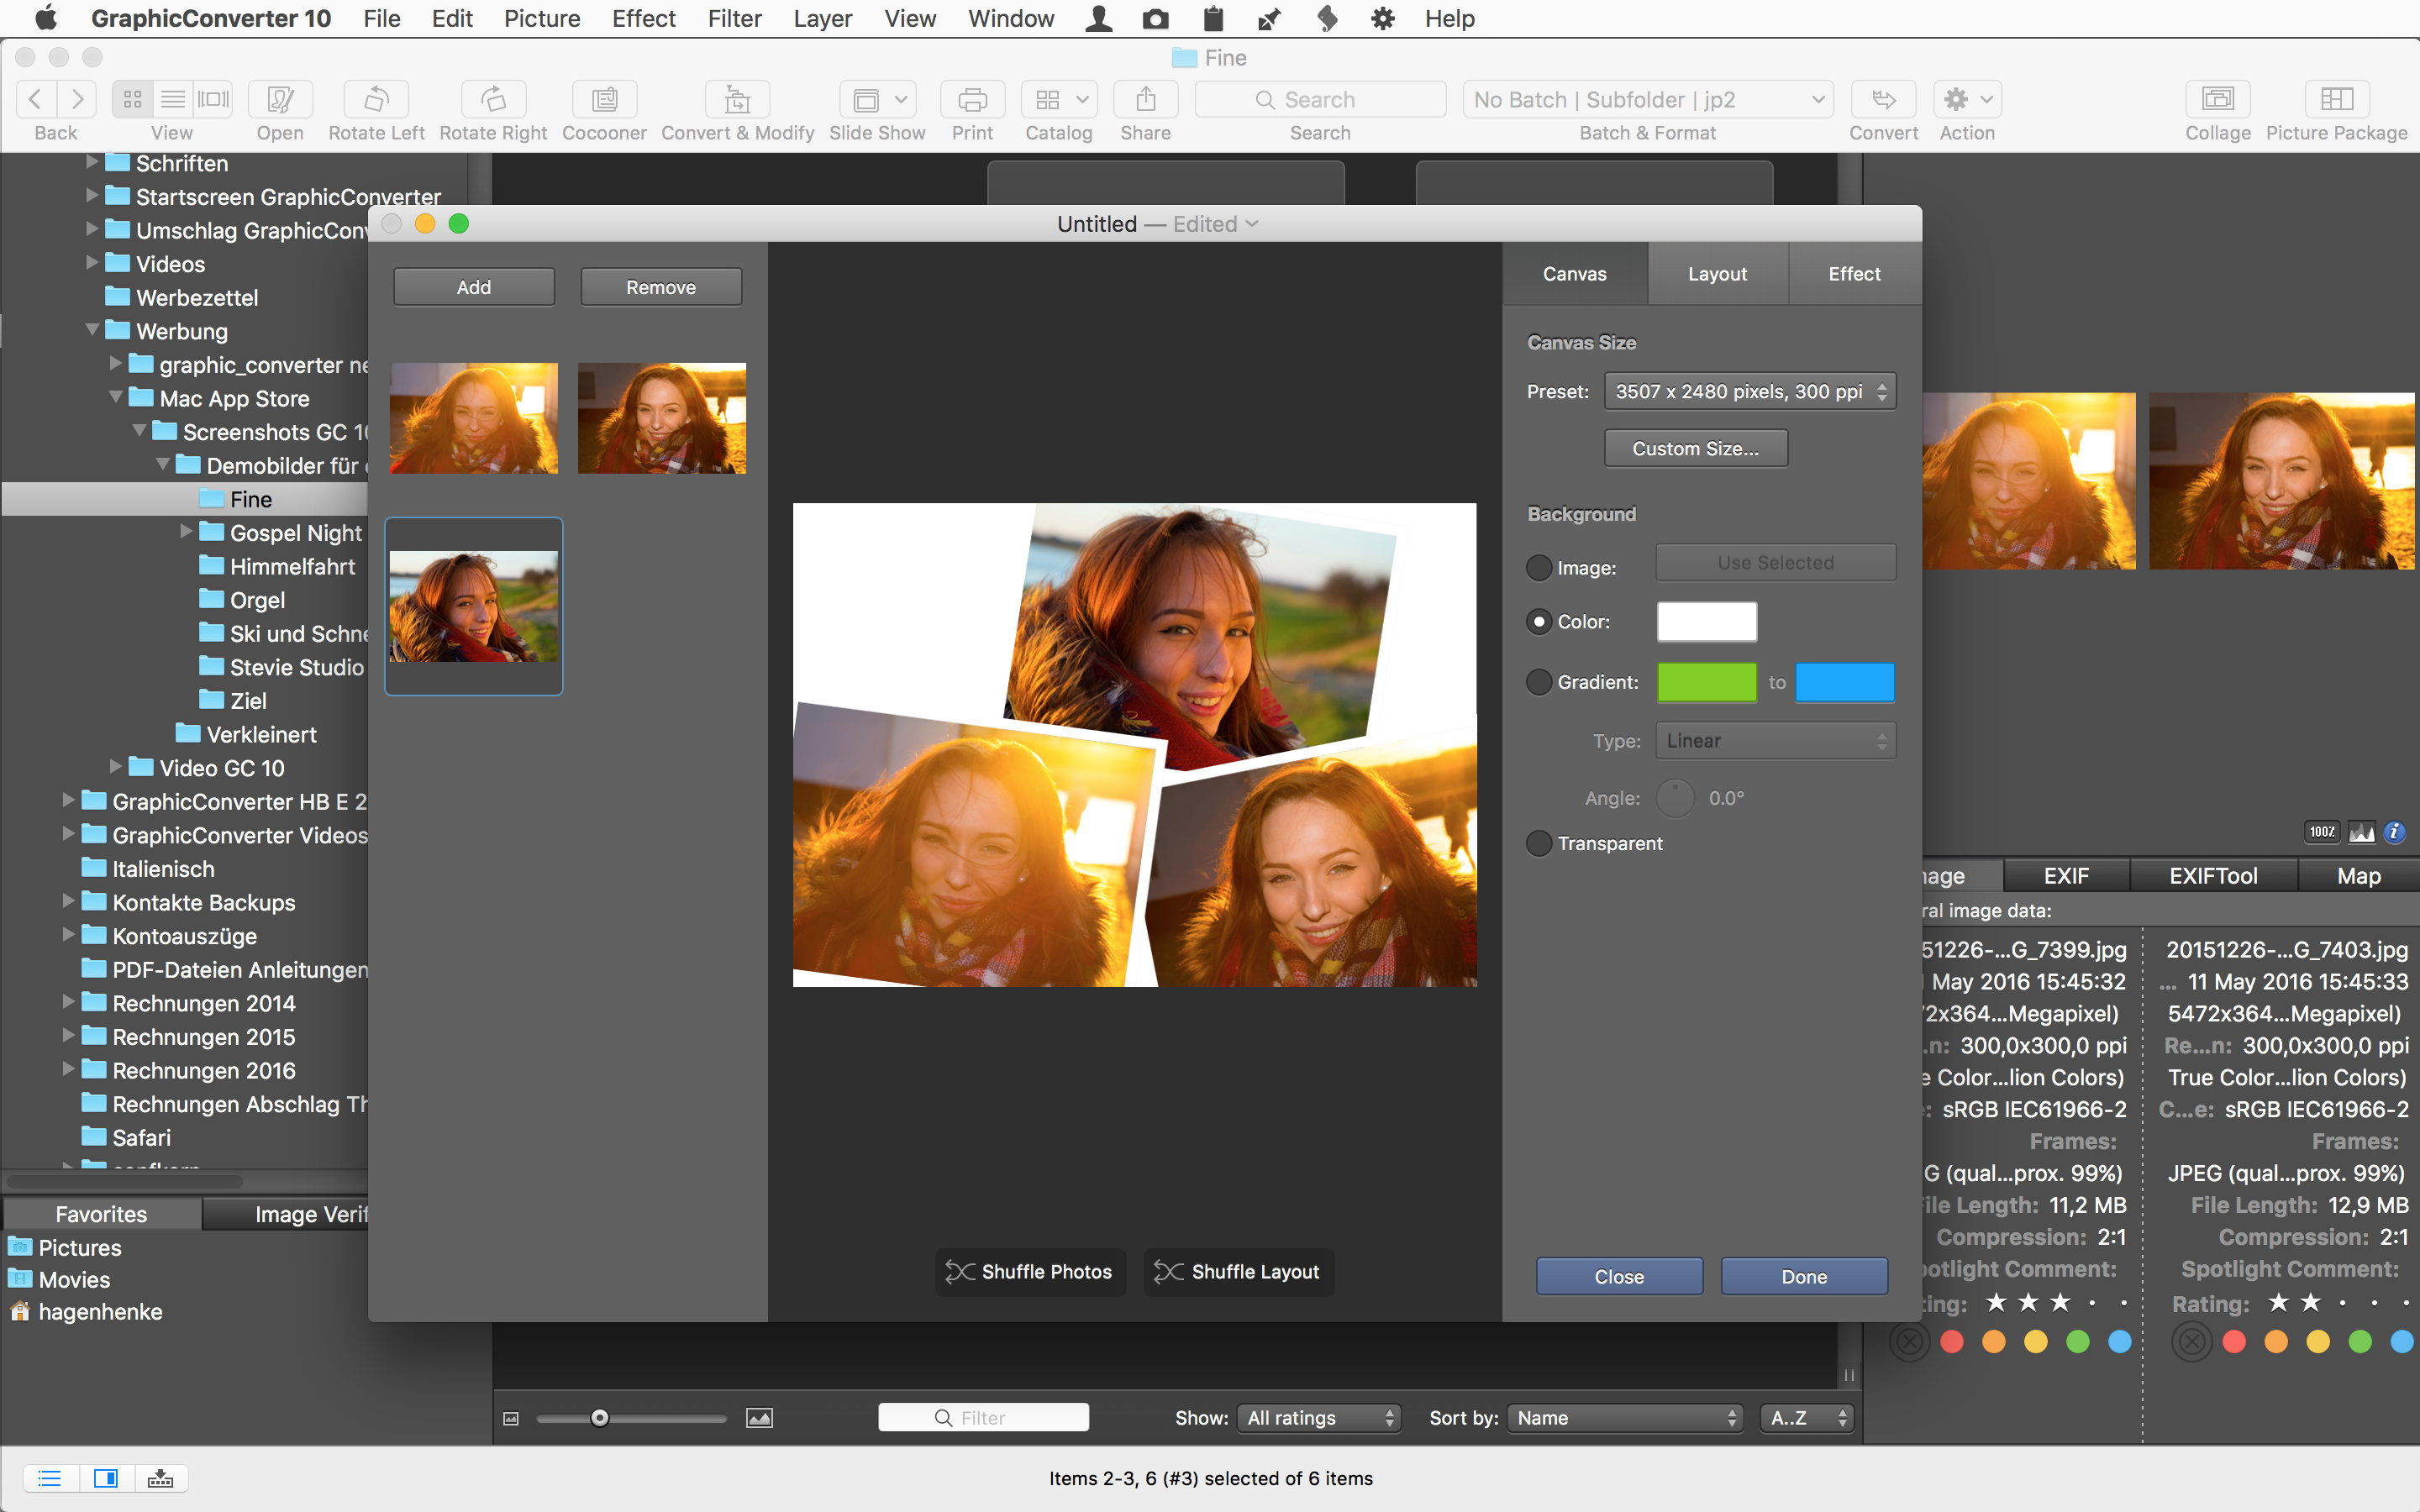 GraphicConverter 10.4.3 Adds New Features To Award-Winning Image Utility Image